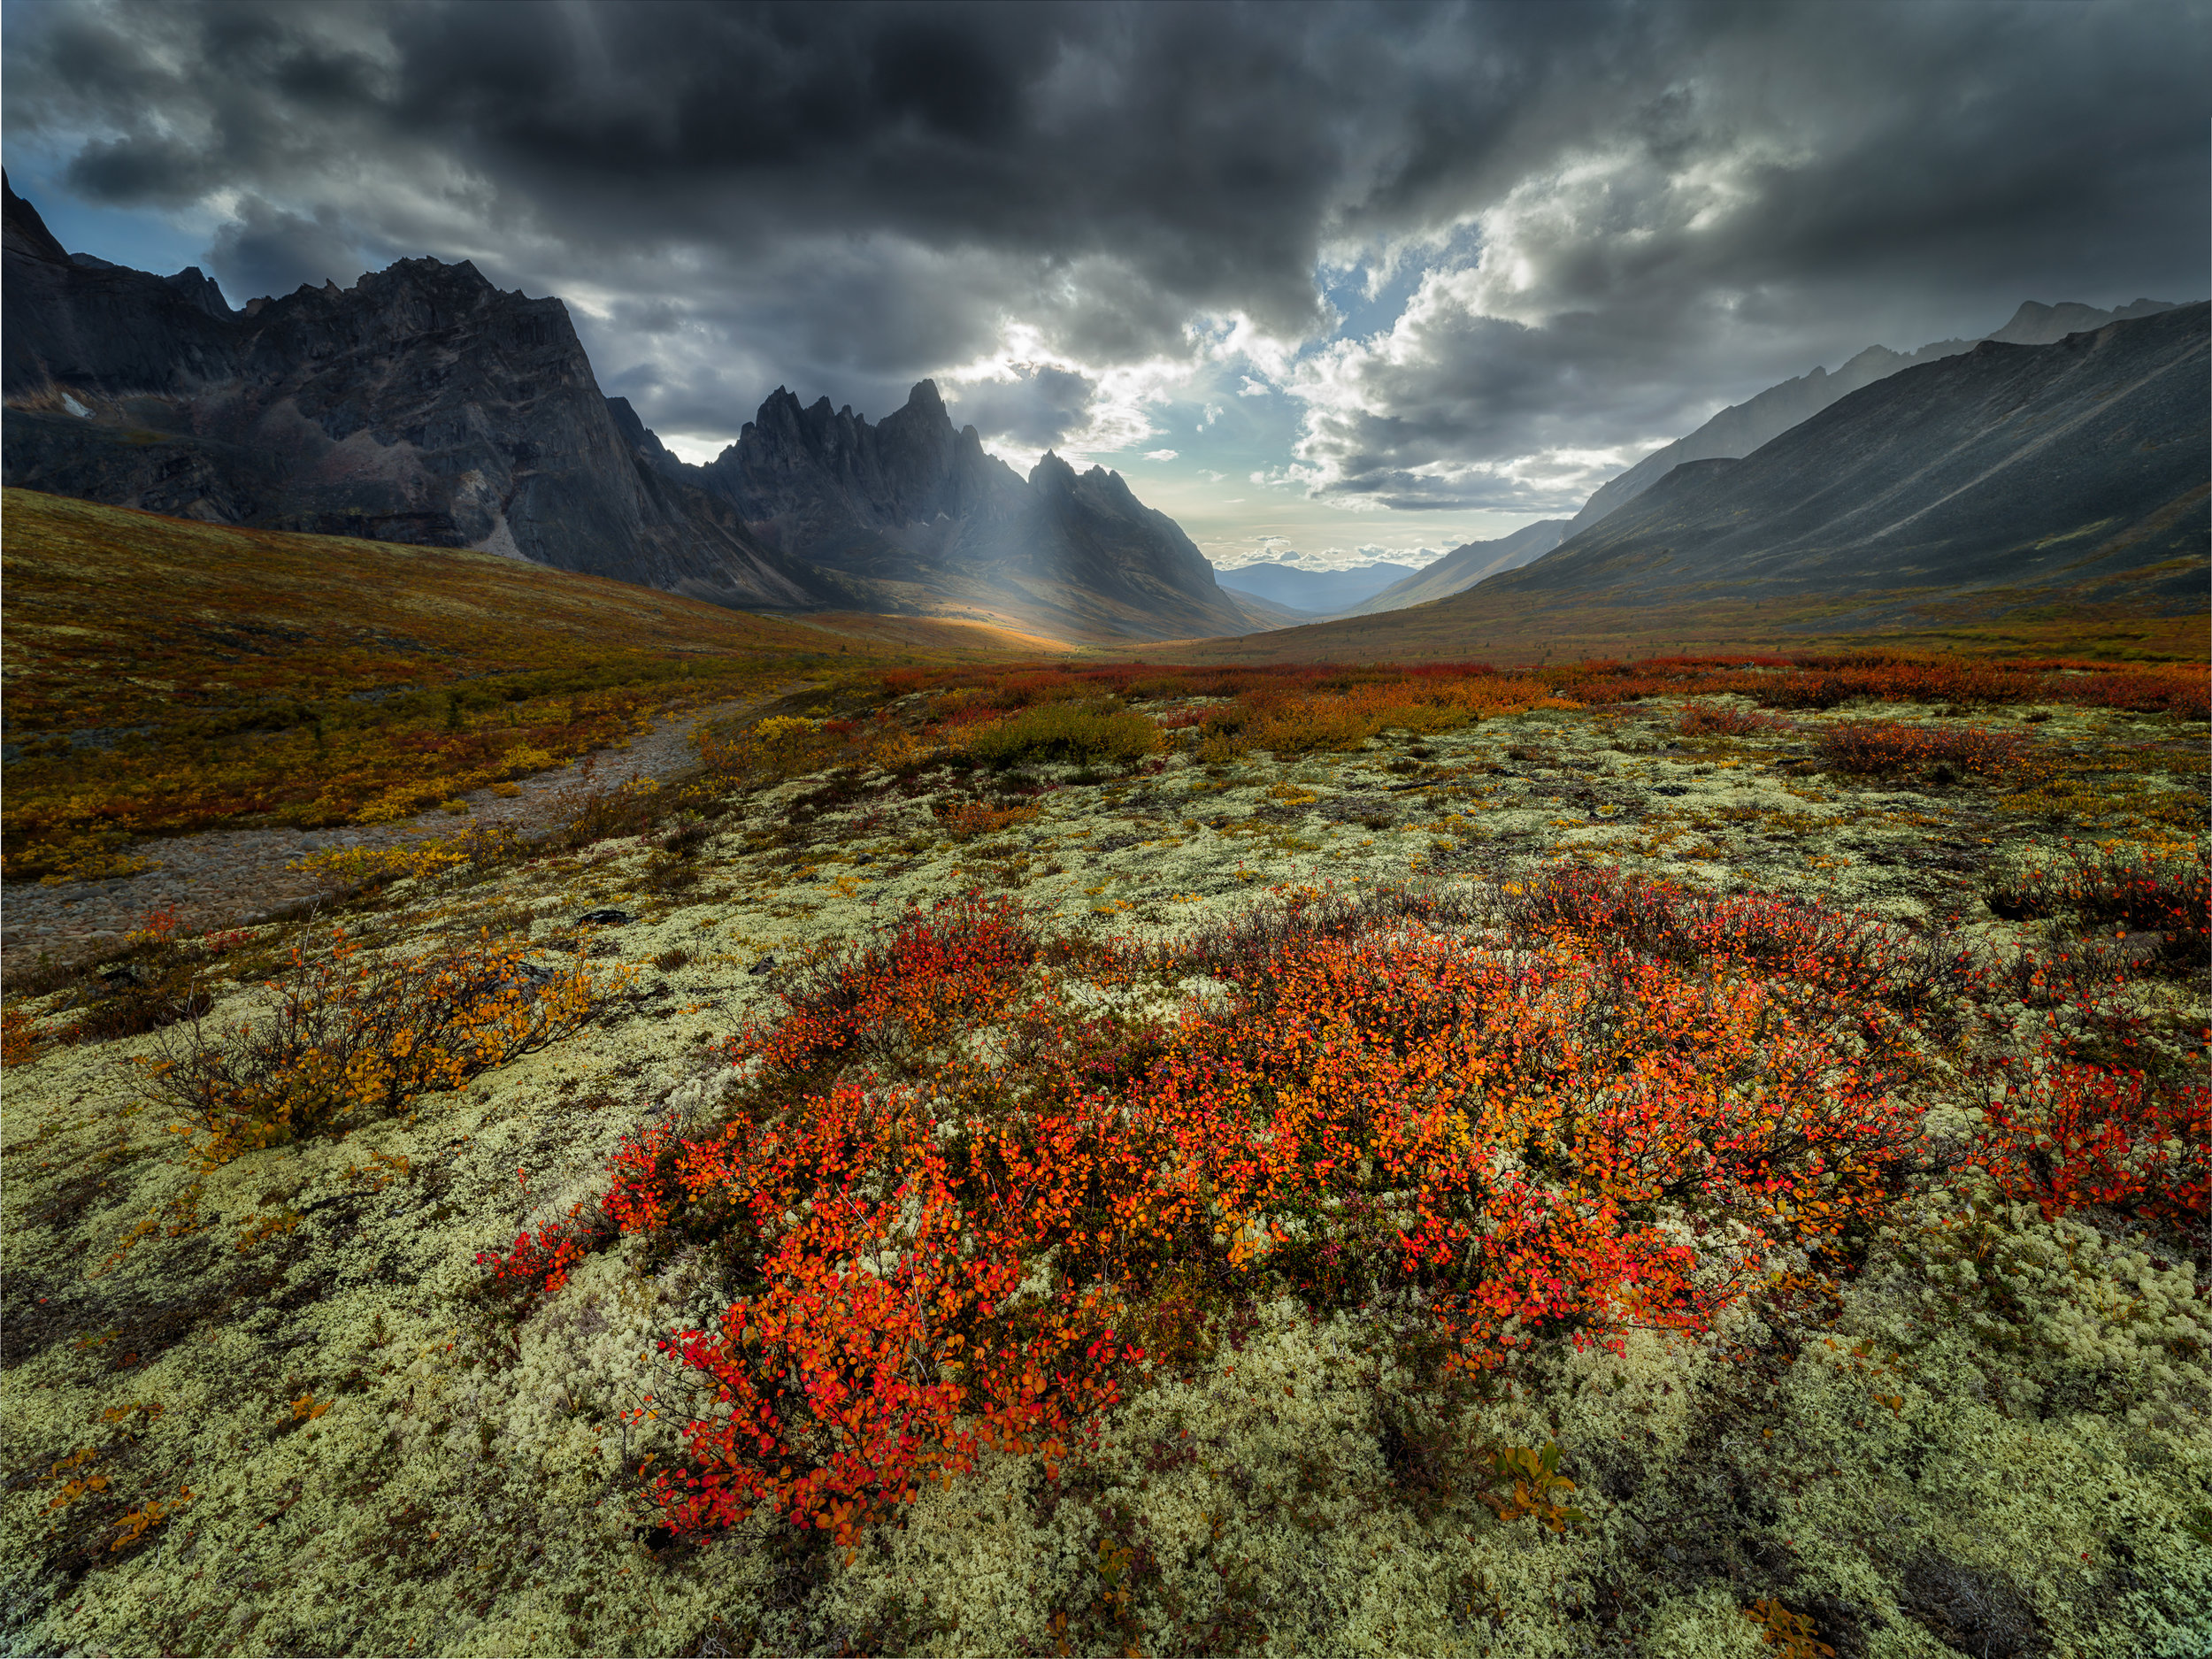 photo_workshop_yukon_tombstone-8.jpg